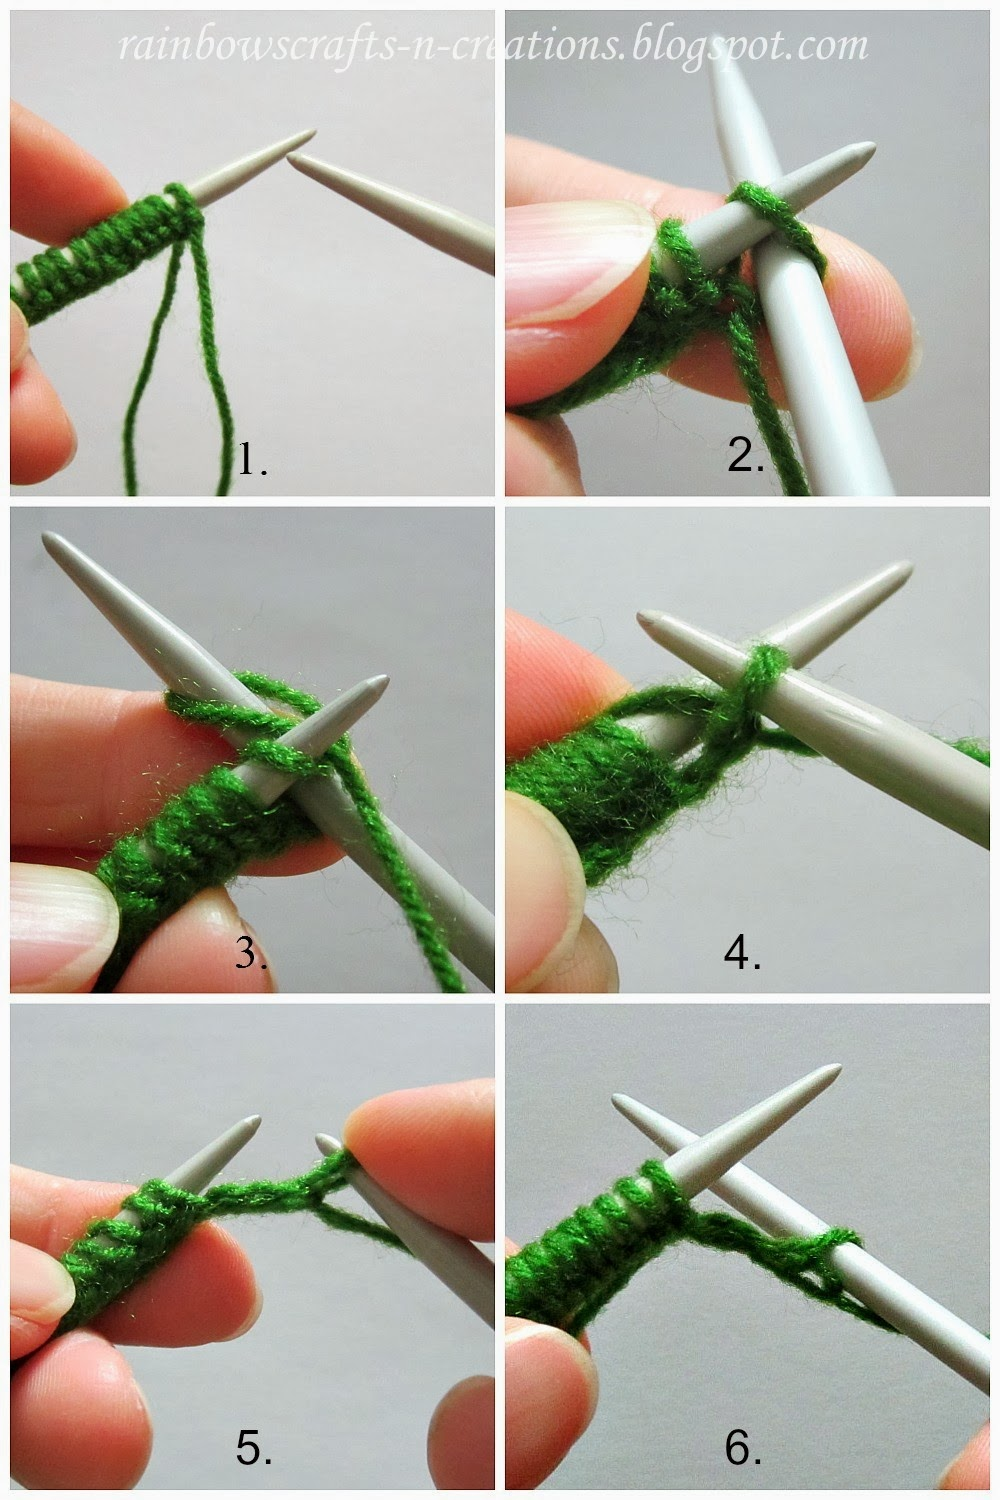 How To Knit A Purl Stitch Step By Step : Rainbows Crafts and Creations: Knit Stitch and Purl Stitch